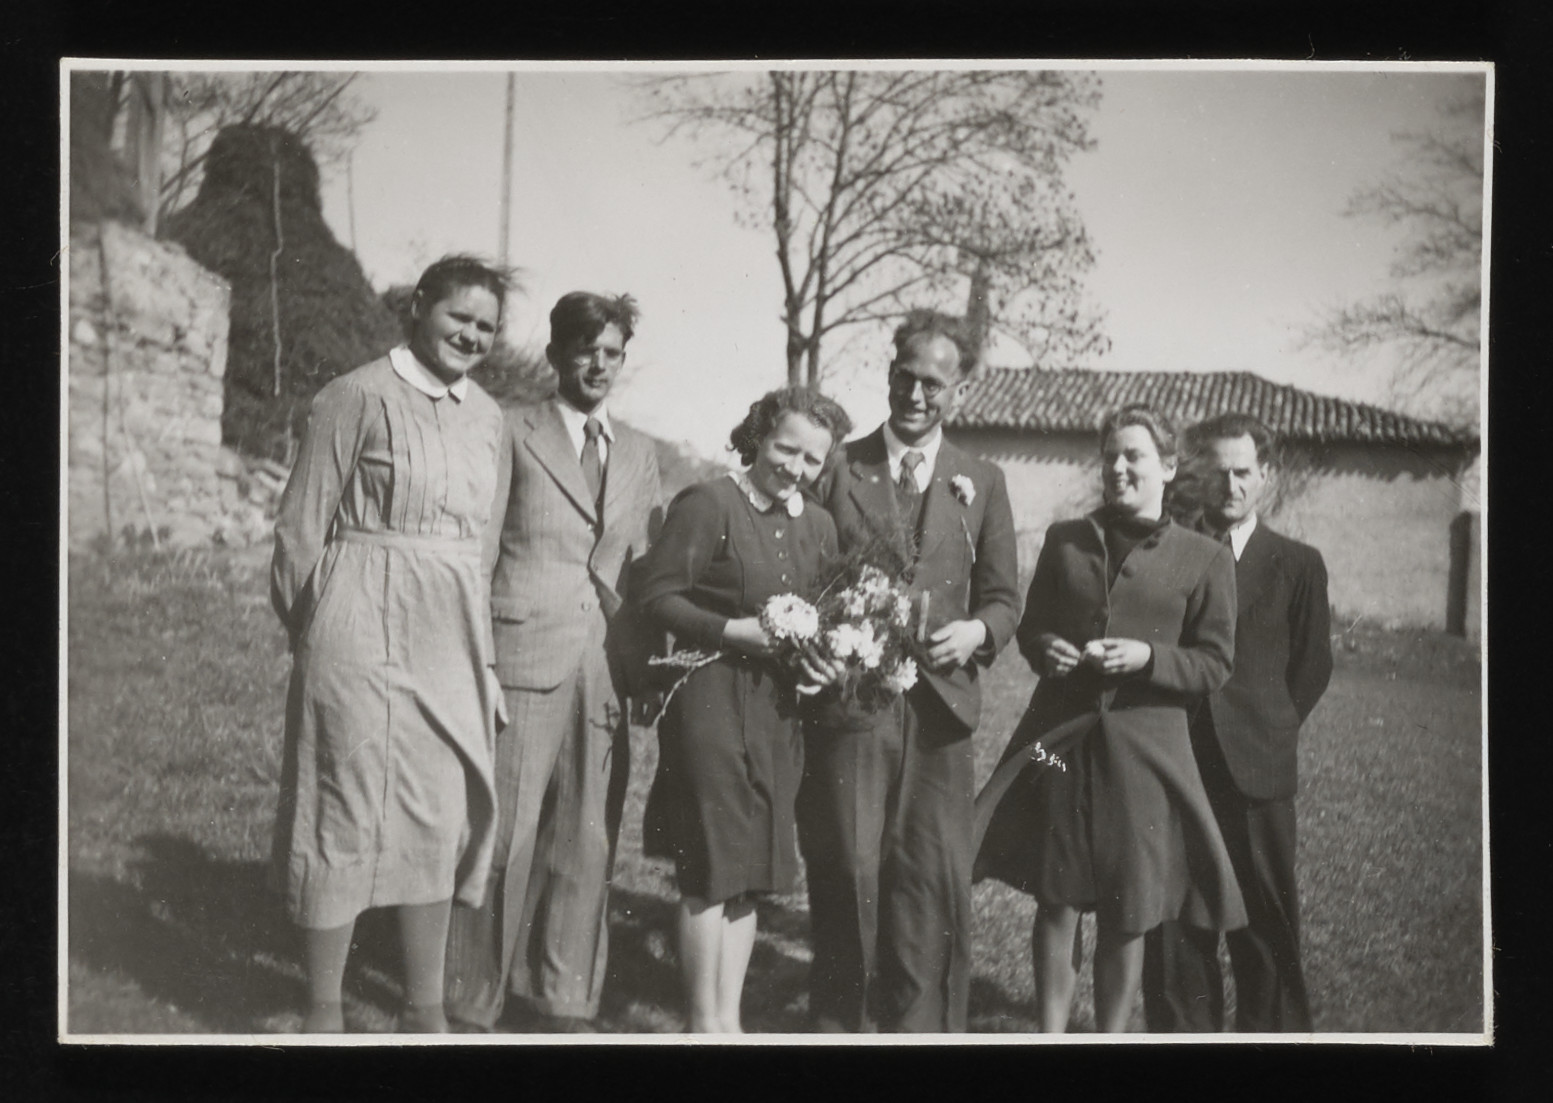 Staff of the La Hillel children's home celebrates the wedding of Anneliese and Heiri Kagi.  Pictured left to right are: Emily Ott, Sebastian Steiger, Anneliese Kagi, Heiri Kagi, Anne-Marie Piguet, and Eugen Lyrer.